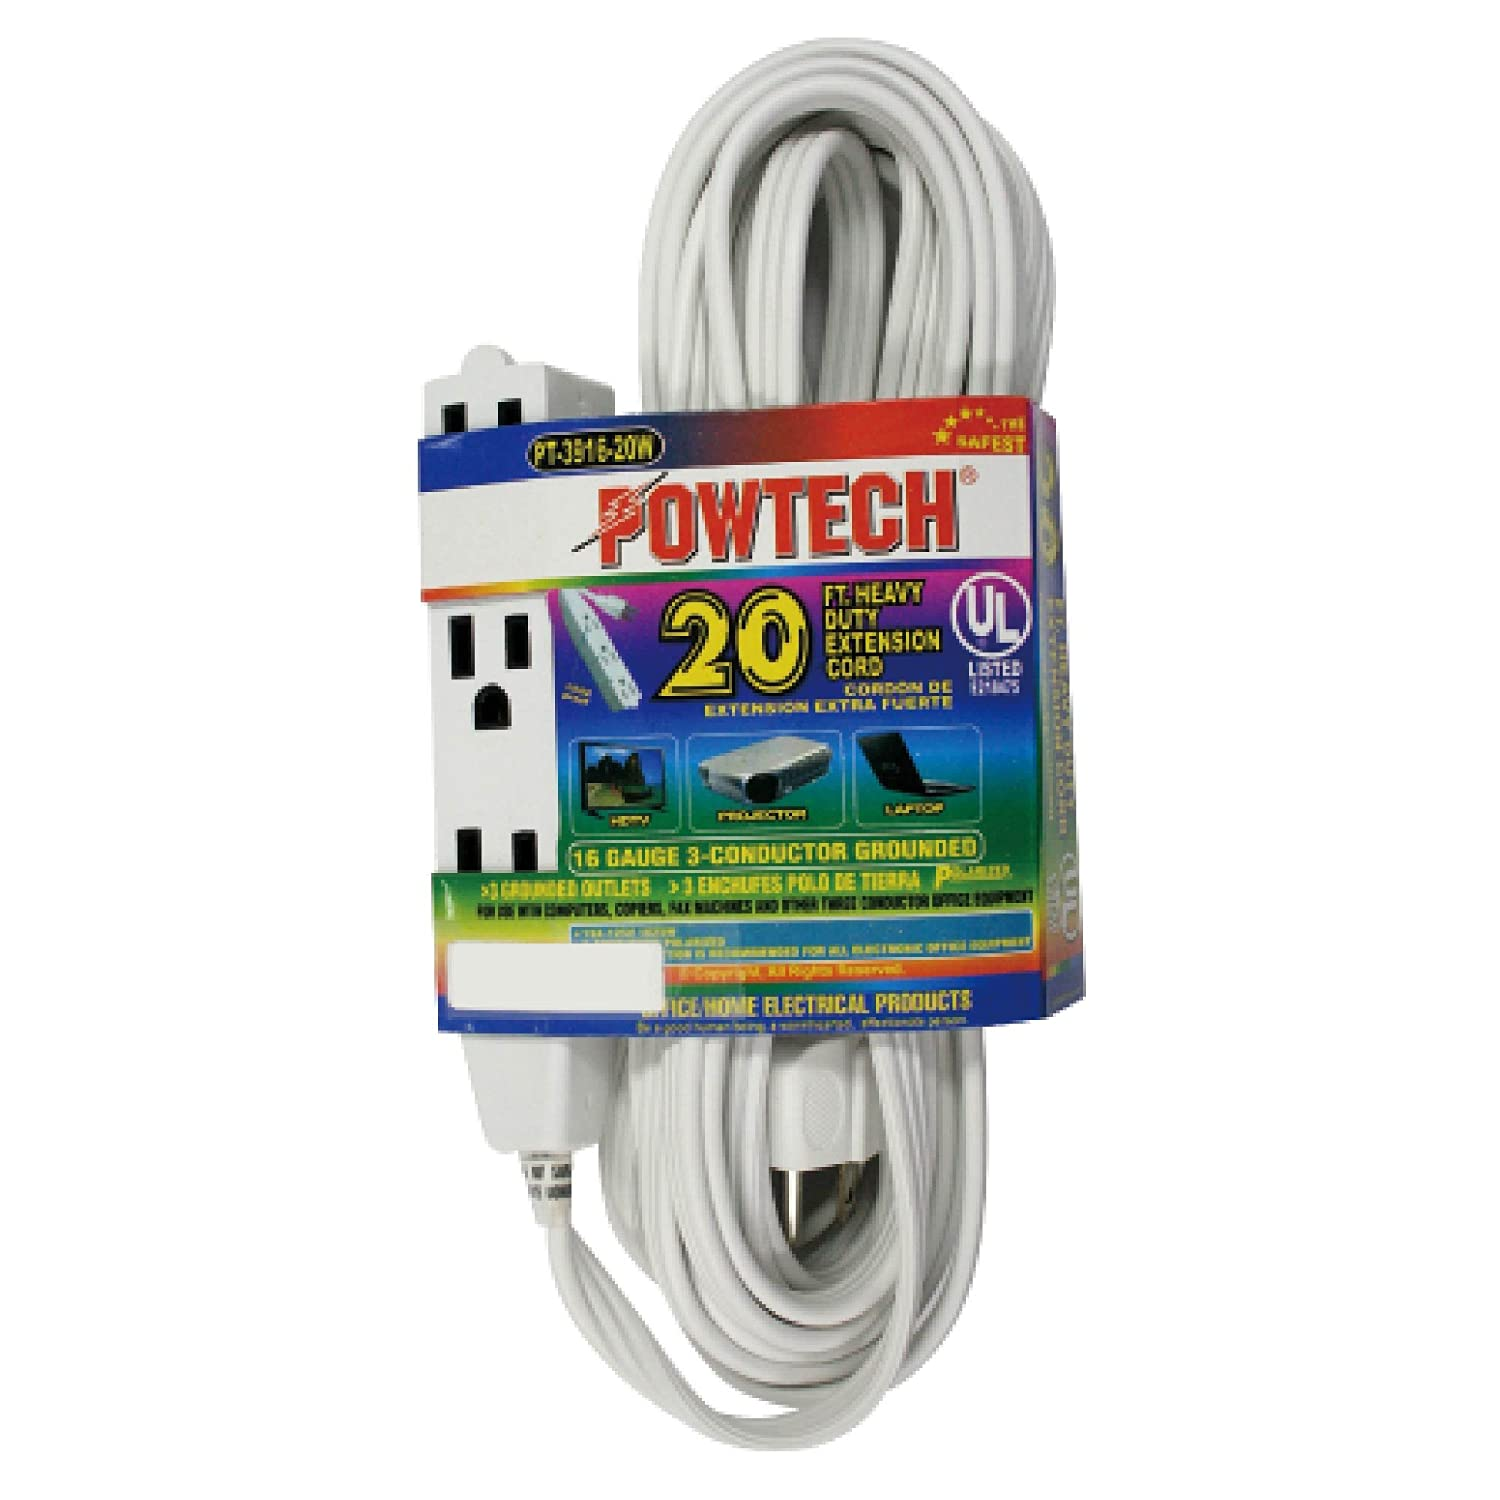 Lamp Cord 16 Gauge.Shop Portfolio Awg 2 Conductor Clear Lamp Cord At ...